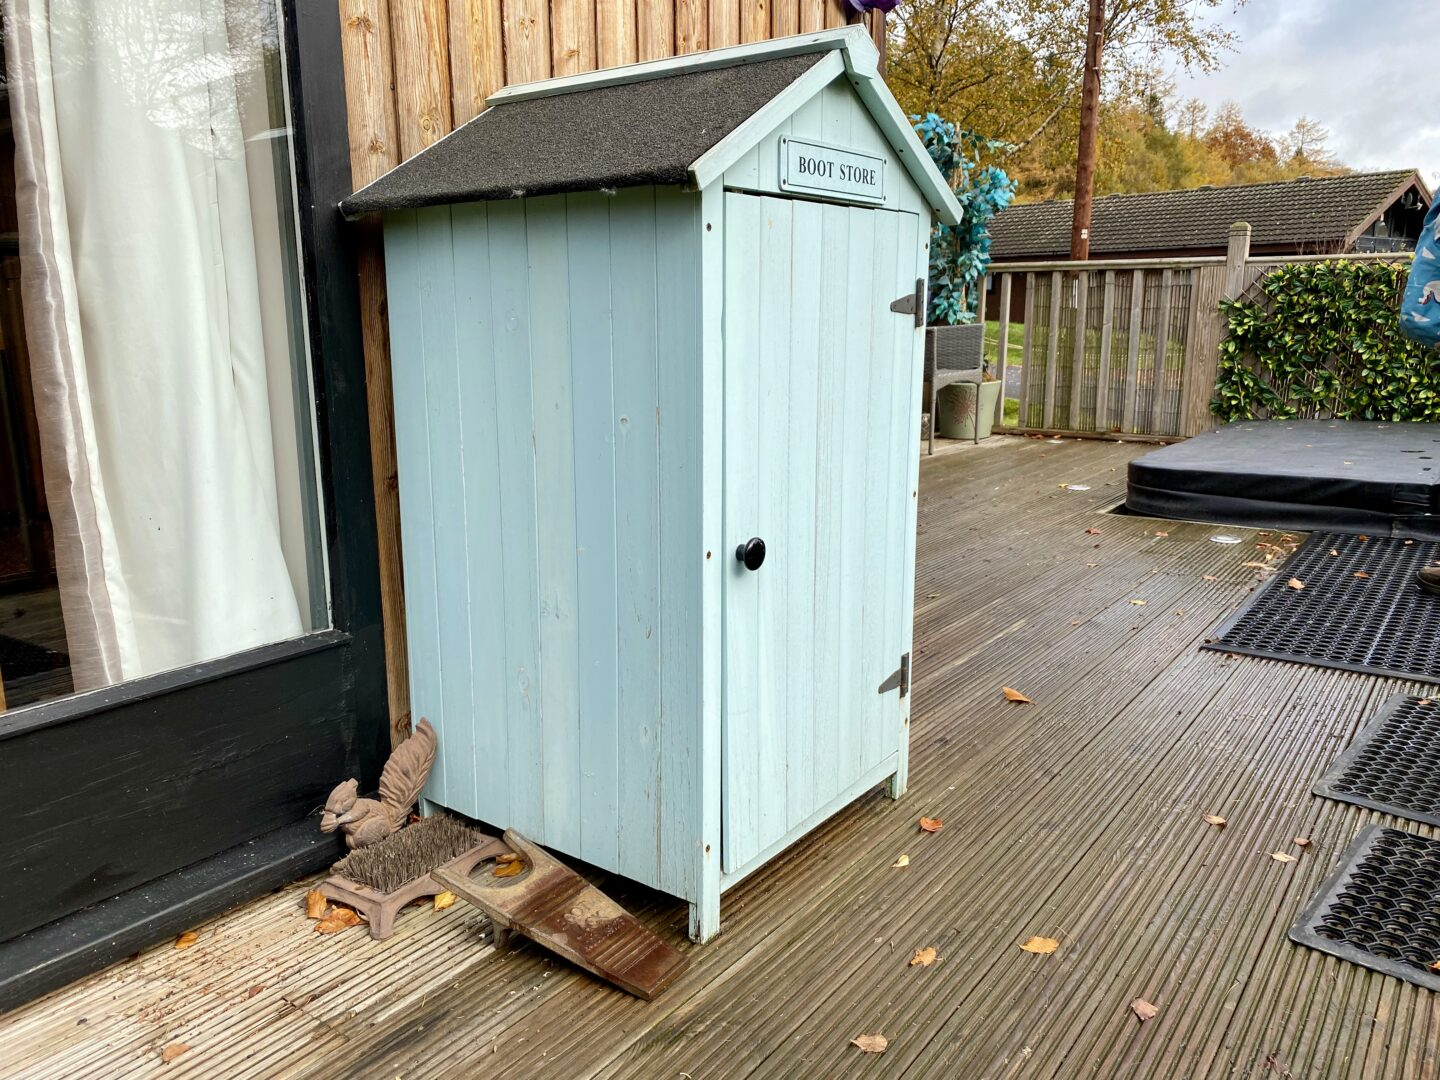 A little outdoor cupboard for wellies at the Snug